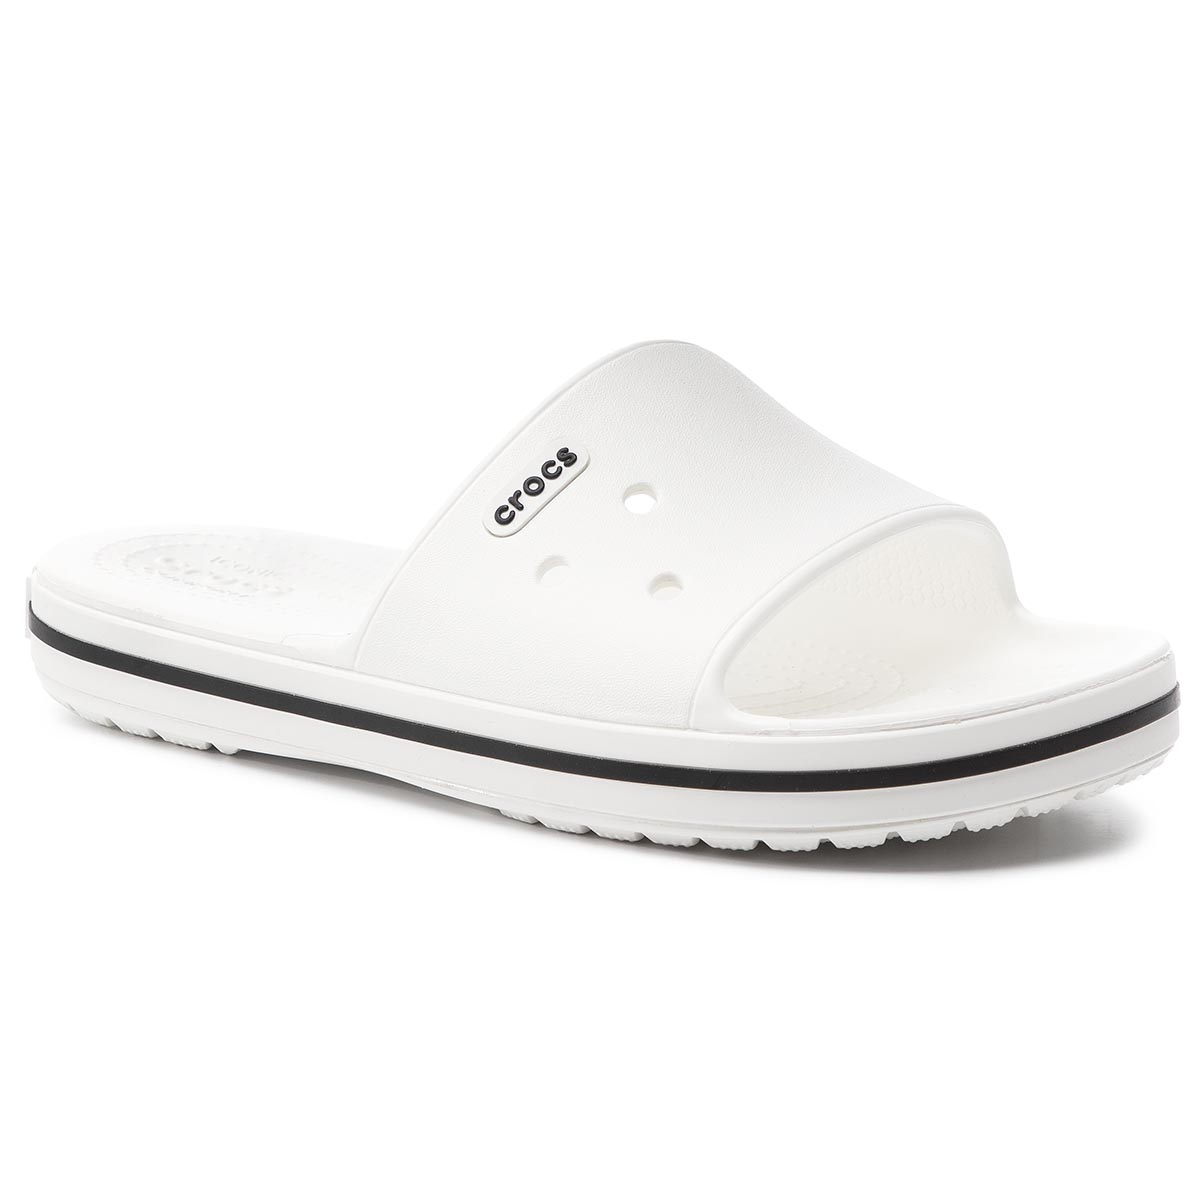 Șlapi CROCS - Crocband III Slide 205733 White/Black